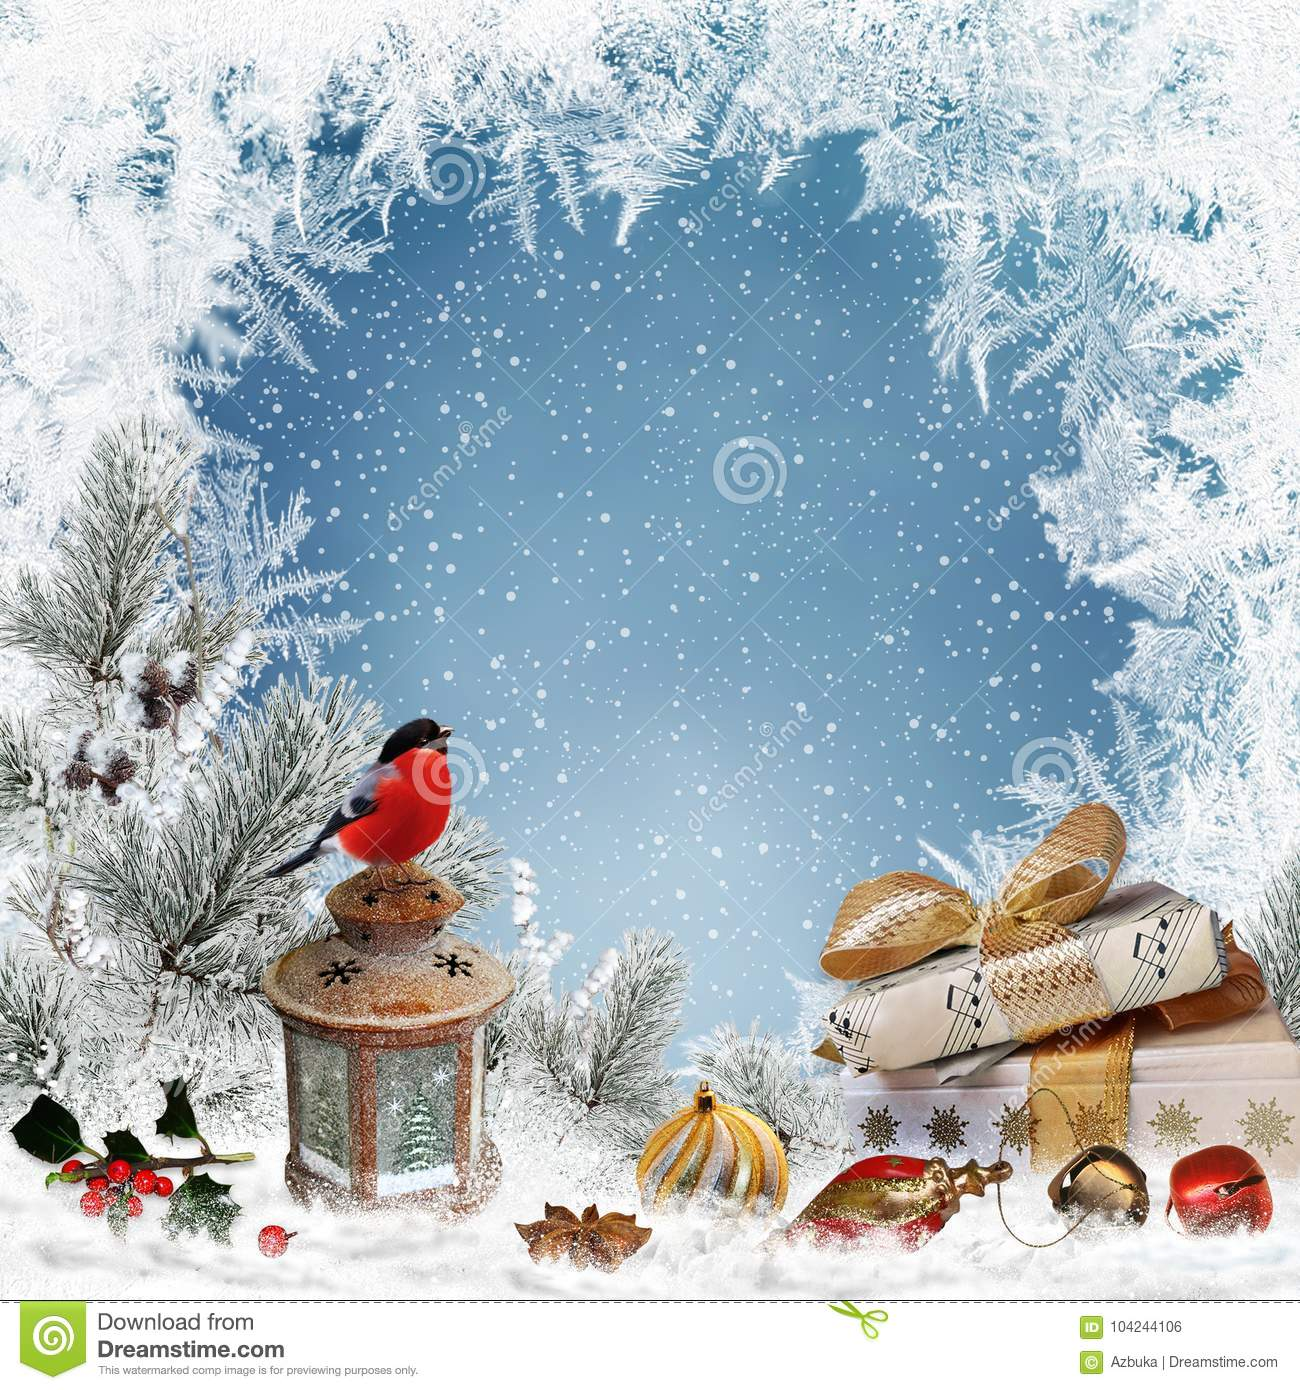 Christmas greeting background with place for text, gifts, bullfinch, lantern, christmas decorations, pine branches